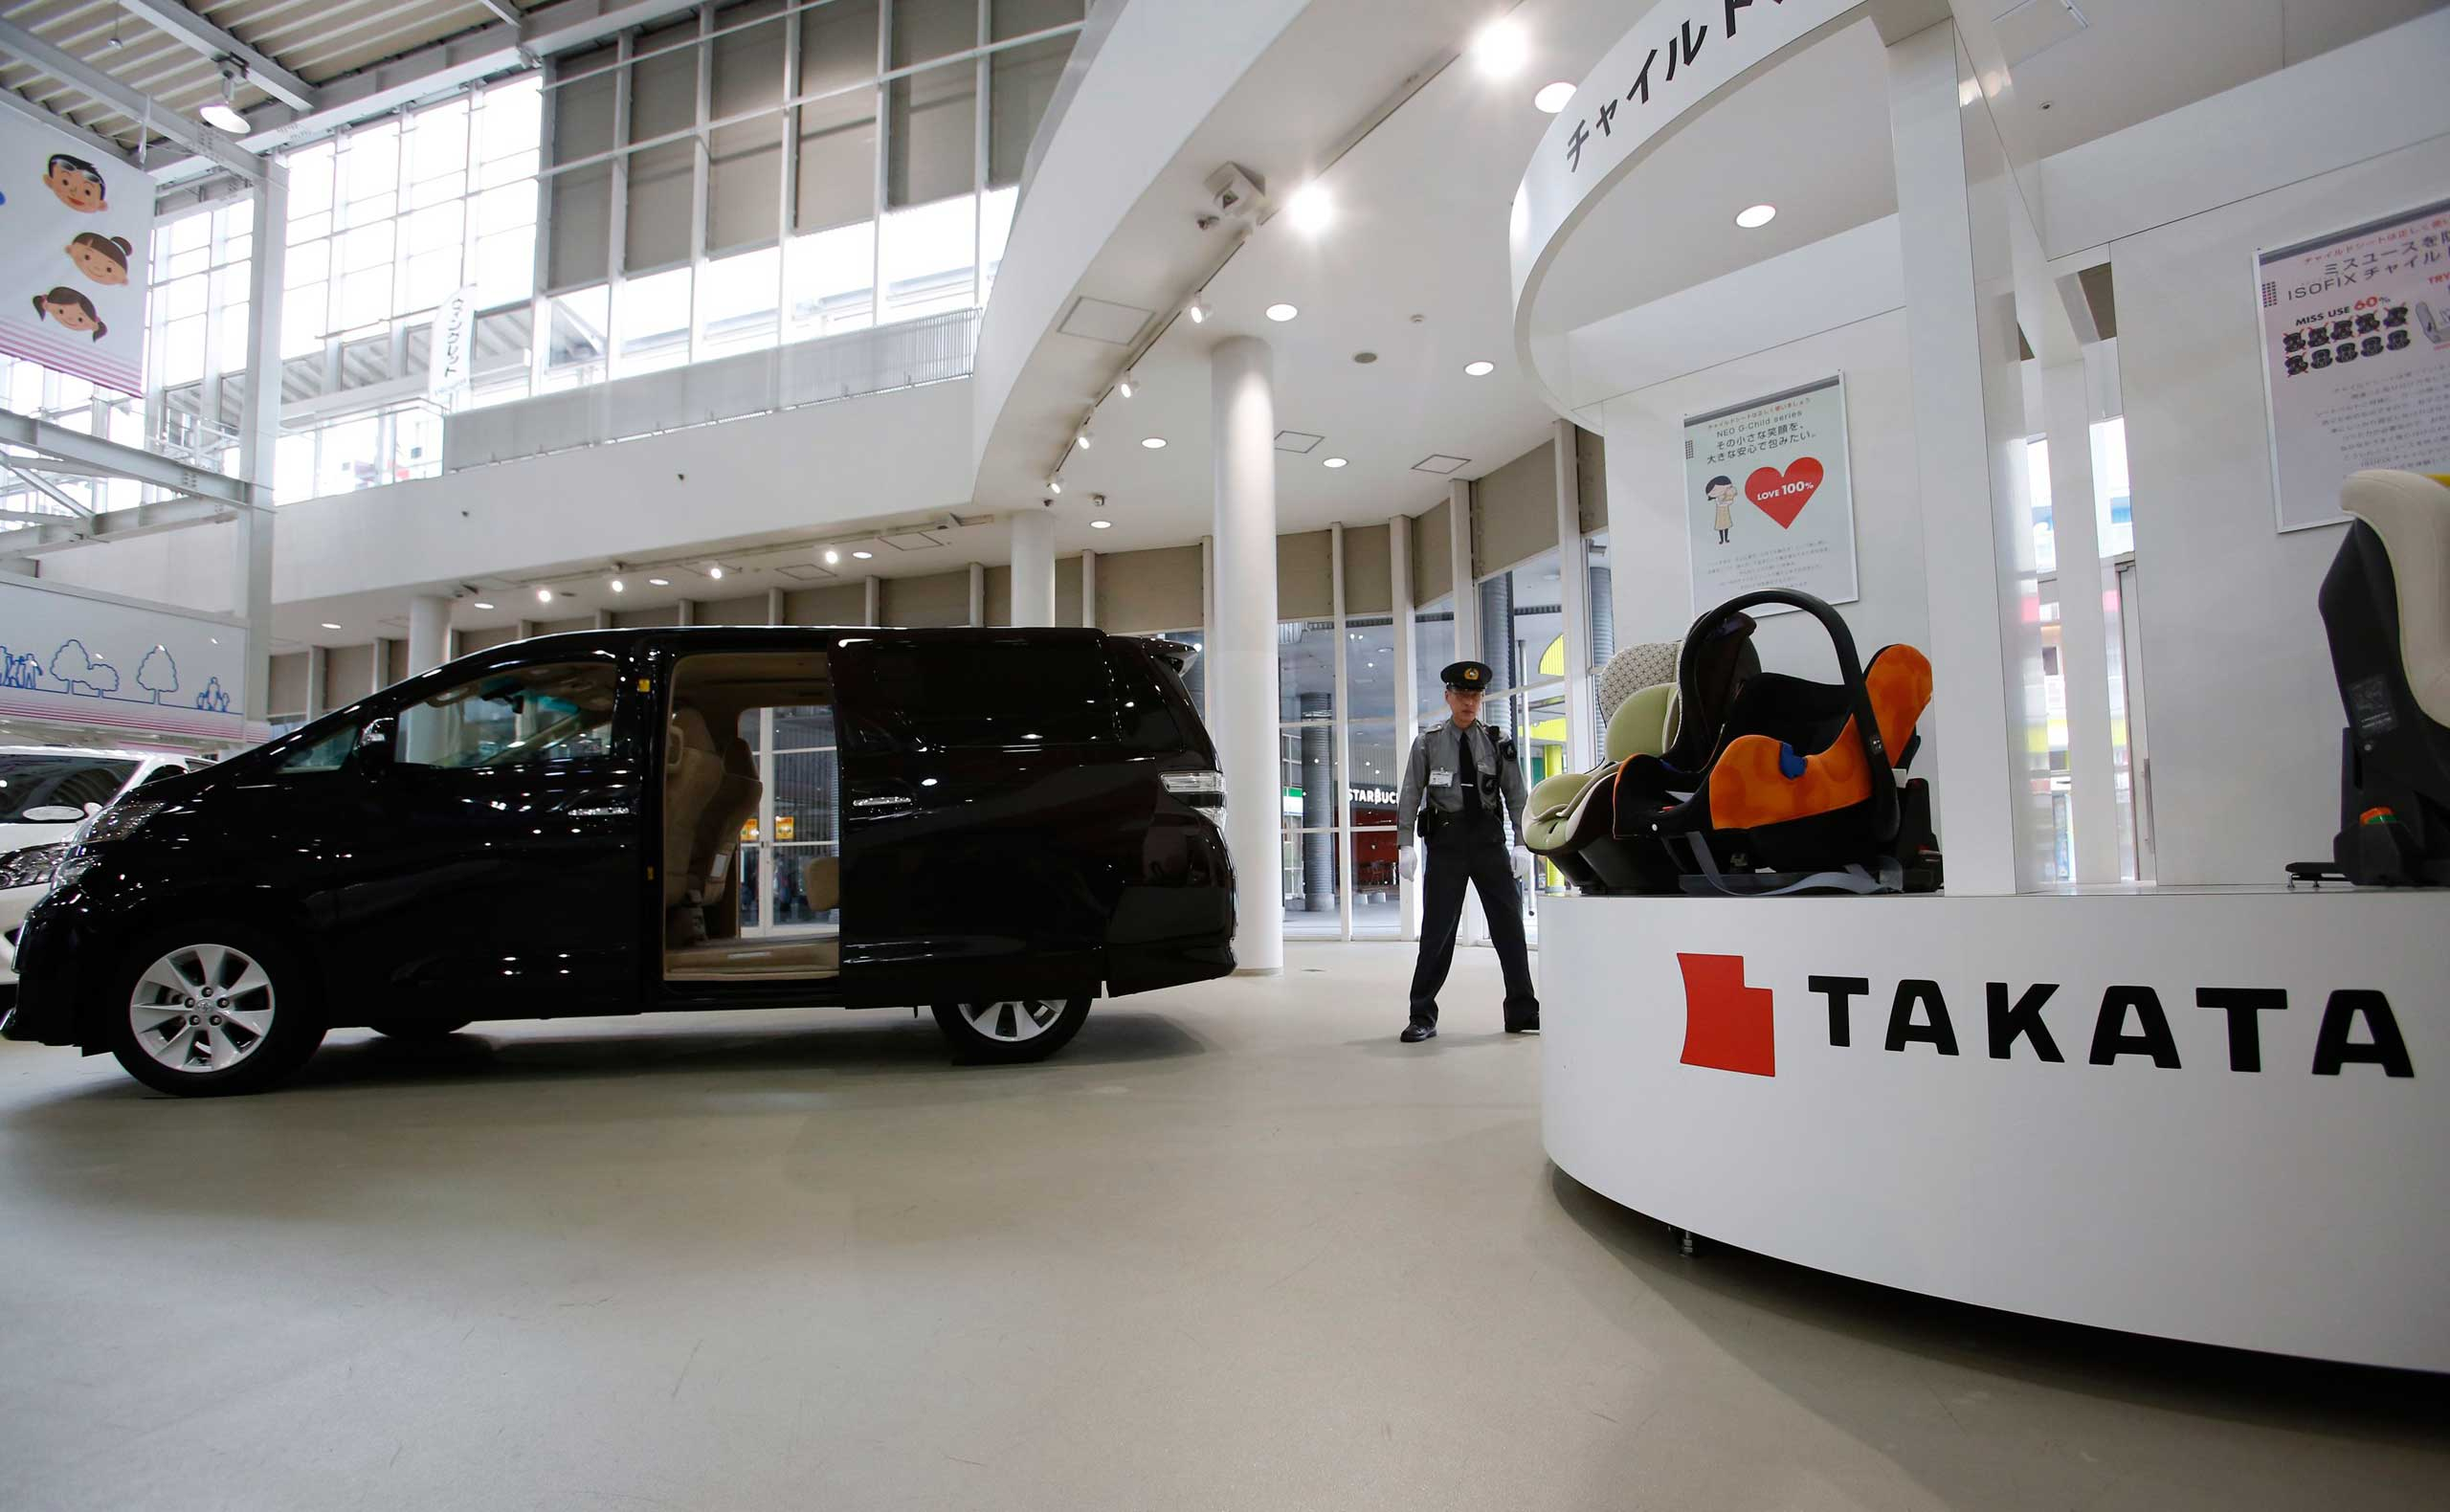 A security guard stands by child seats, manufactured and displayed by Takata Corp. at a Toyota showroom in Tokyo, Nov. 6, 2014.